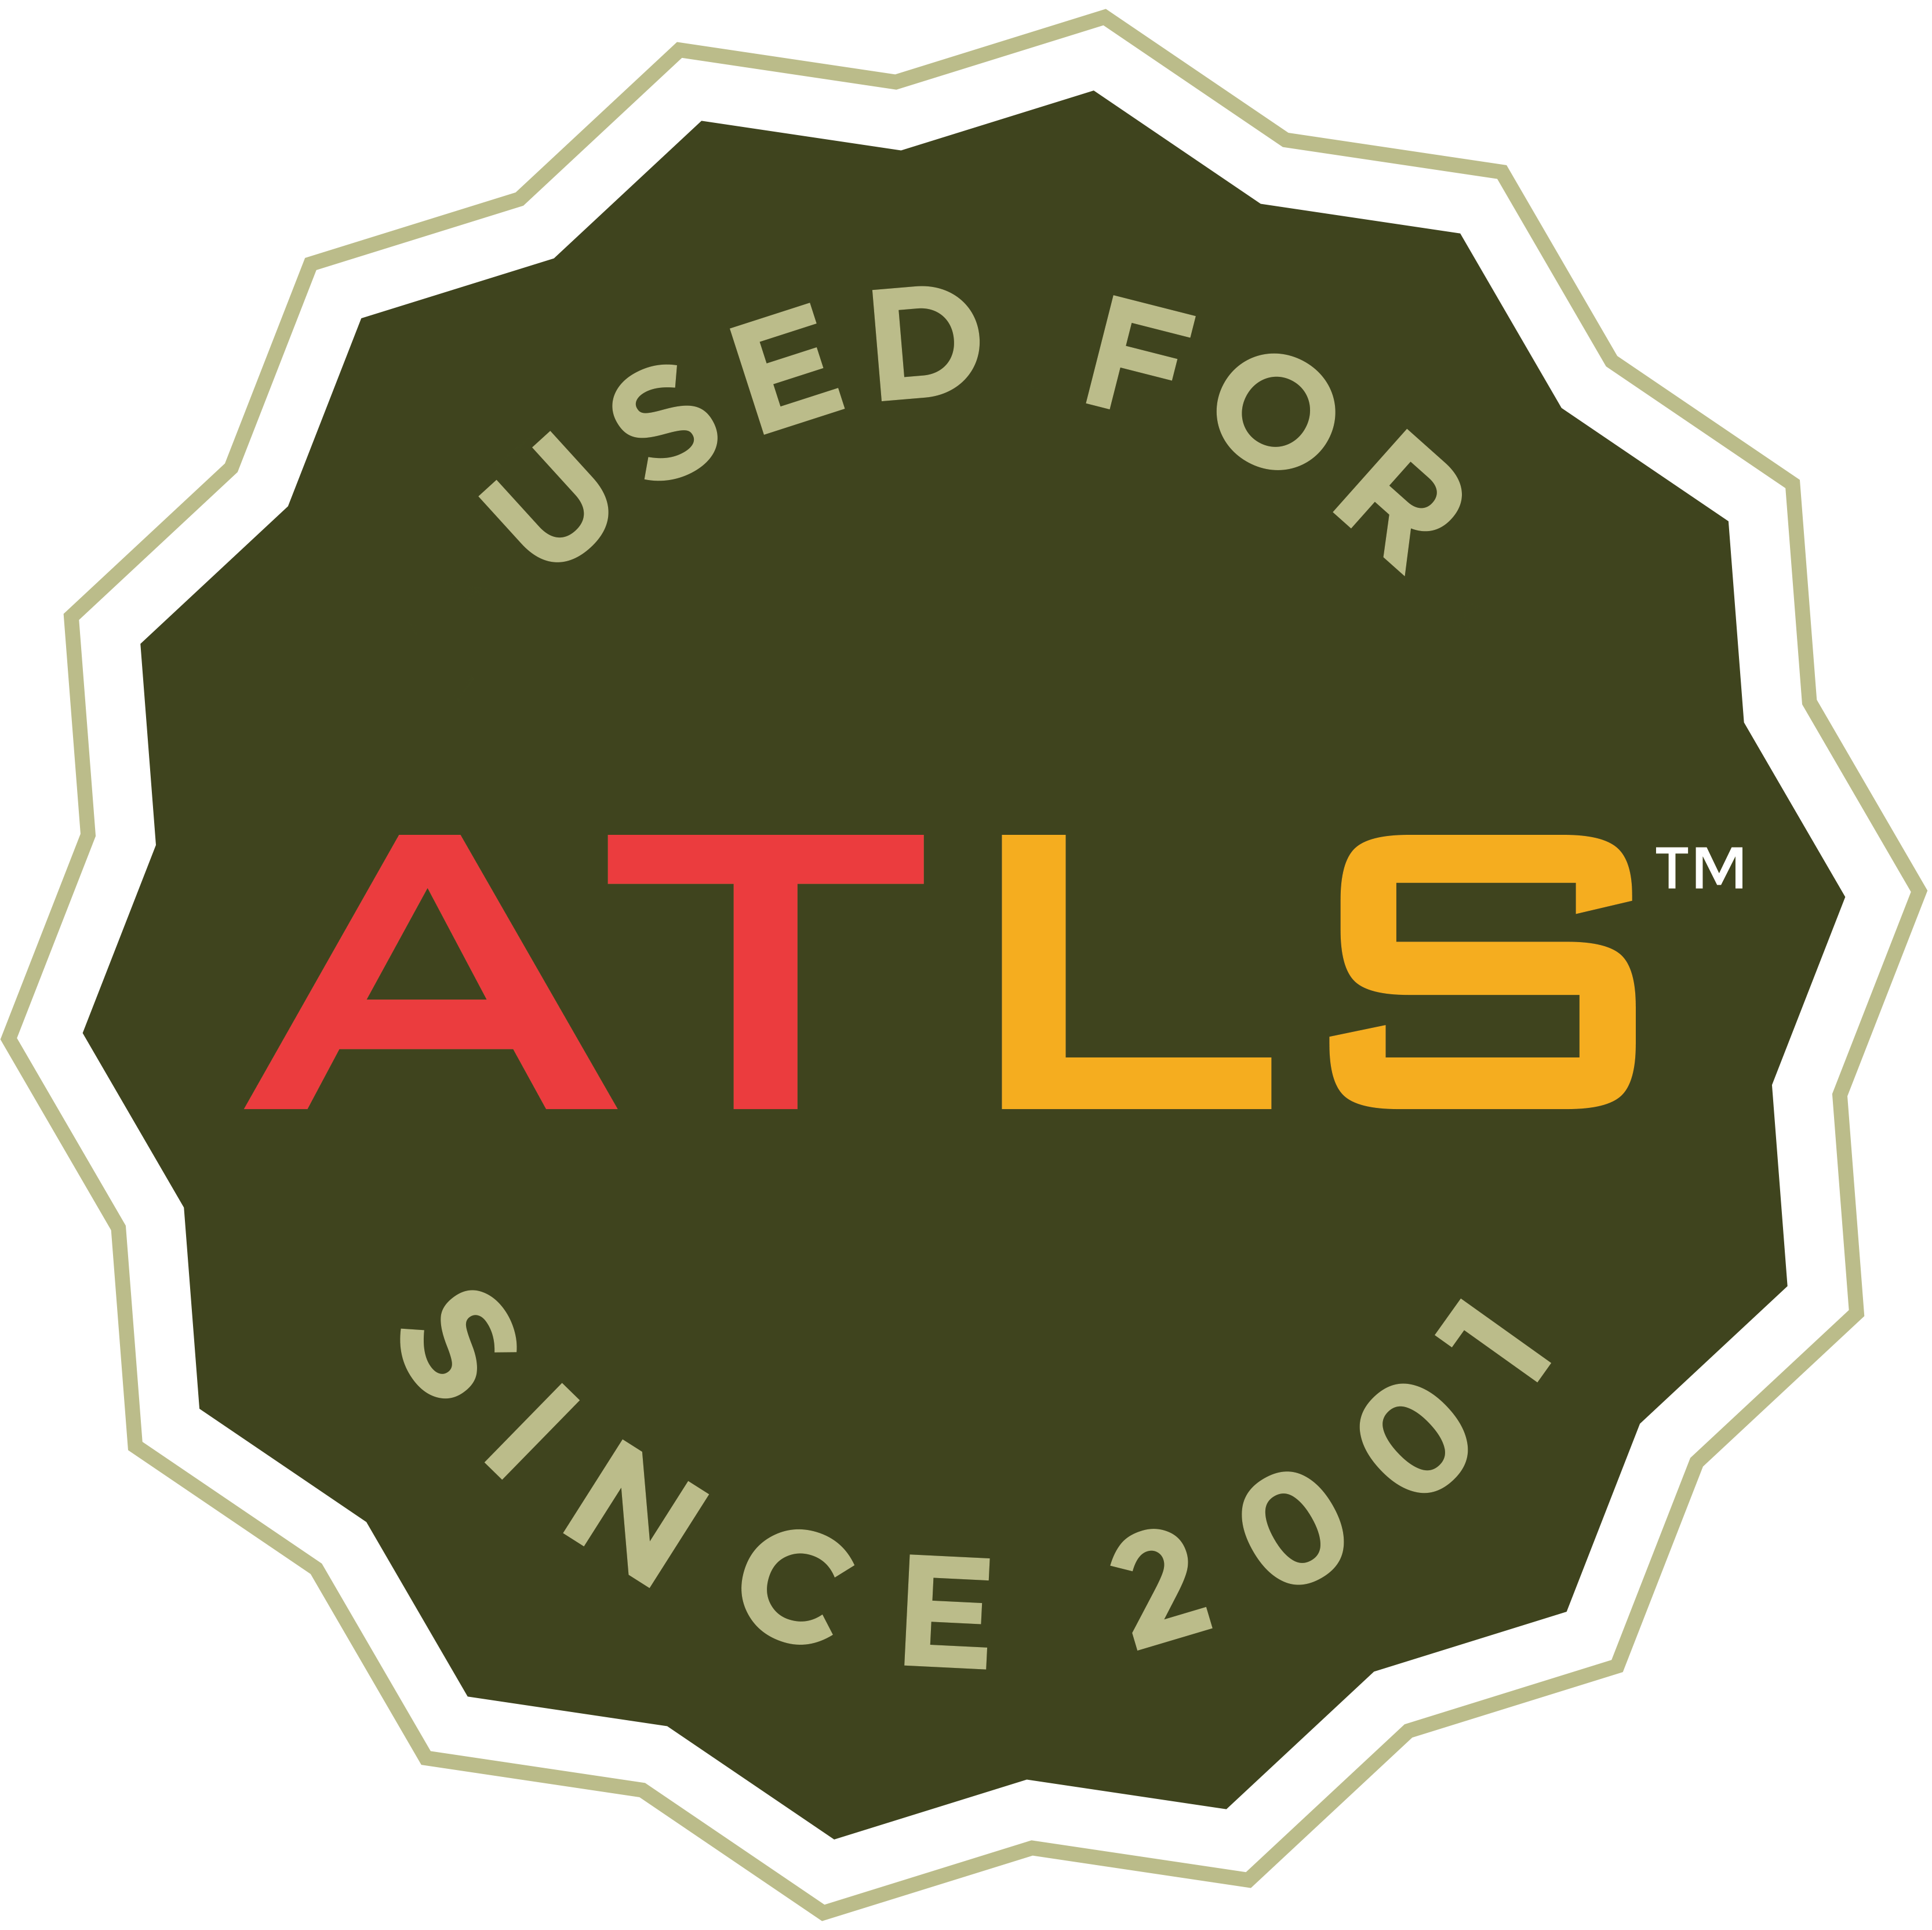 ATLS Approved